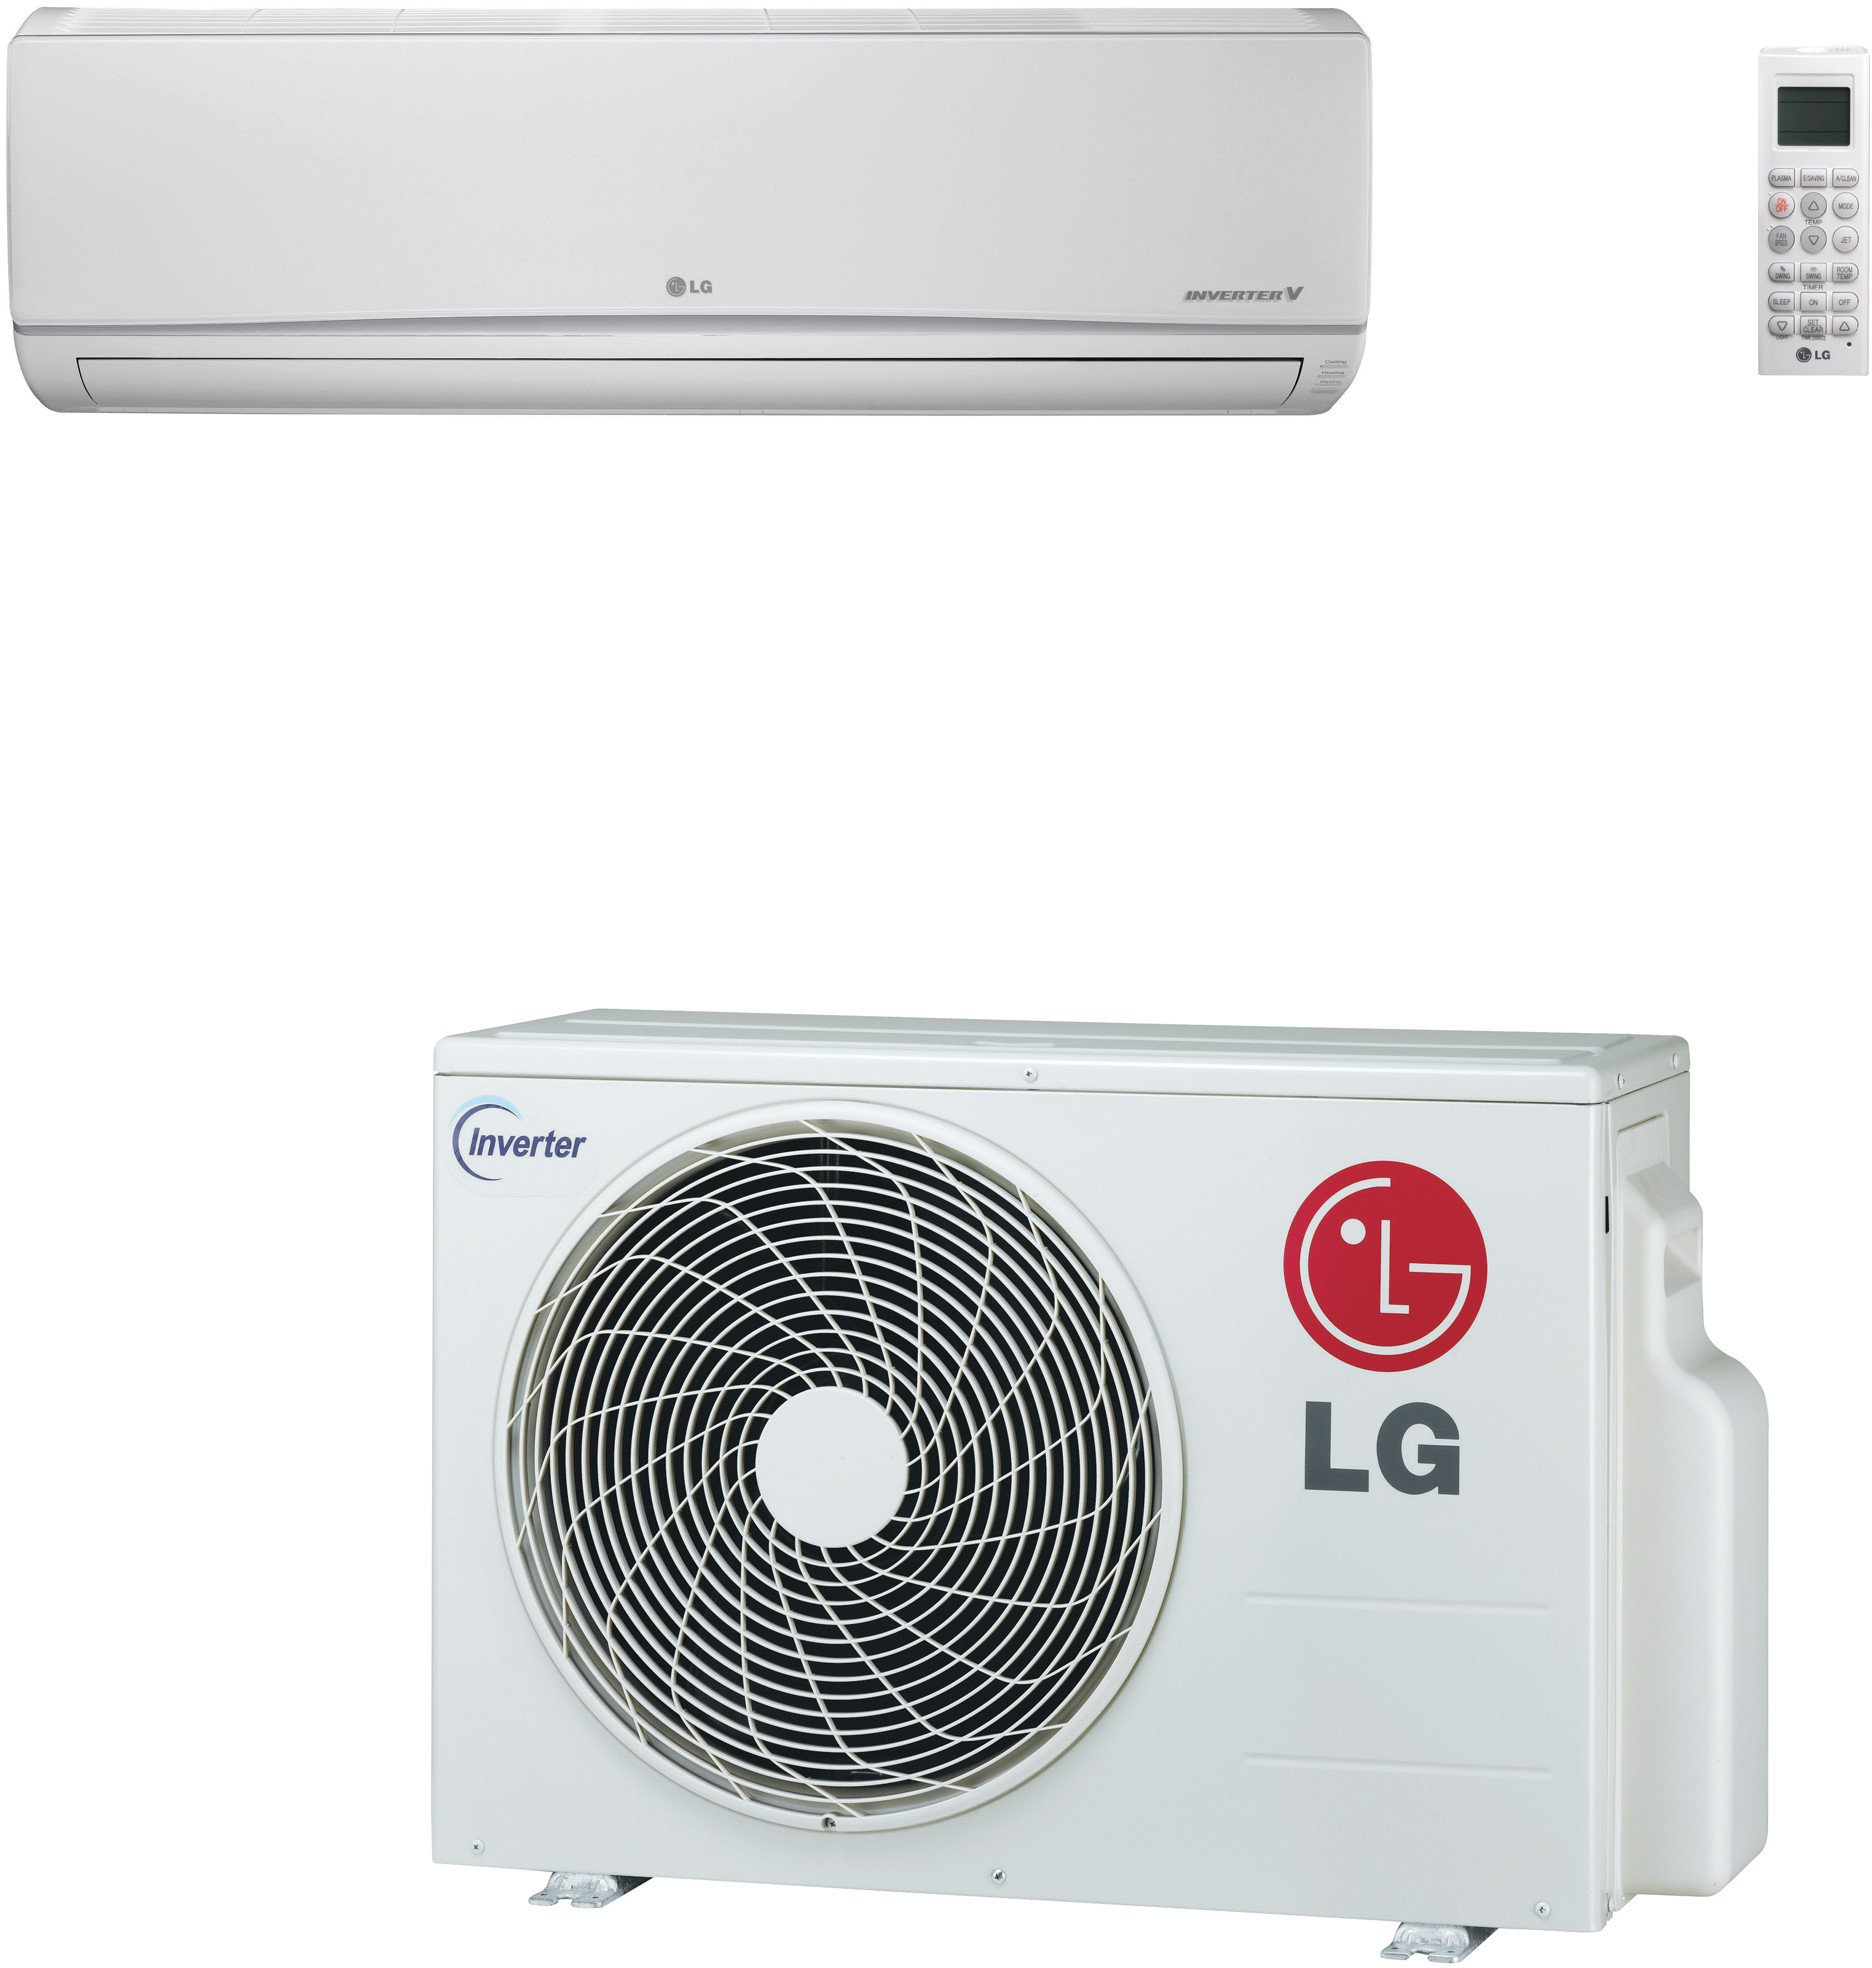 Small Bedroom Air Conditioner Luxury Lg Ls180hev